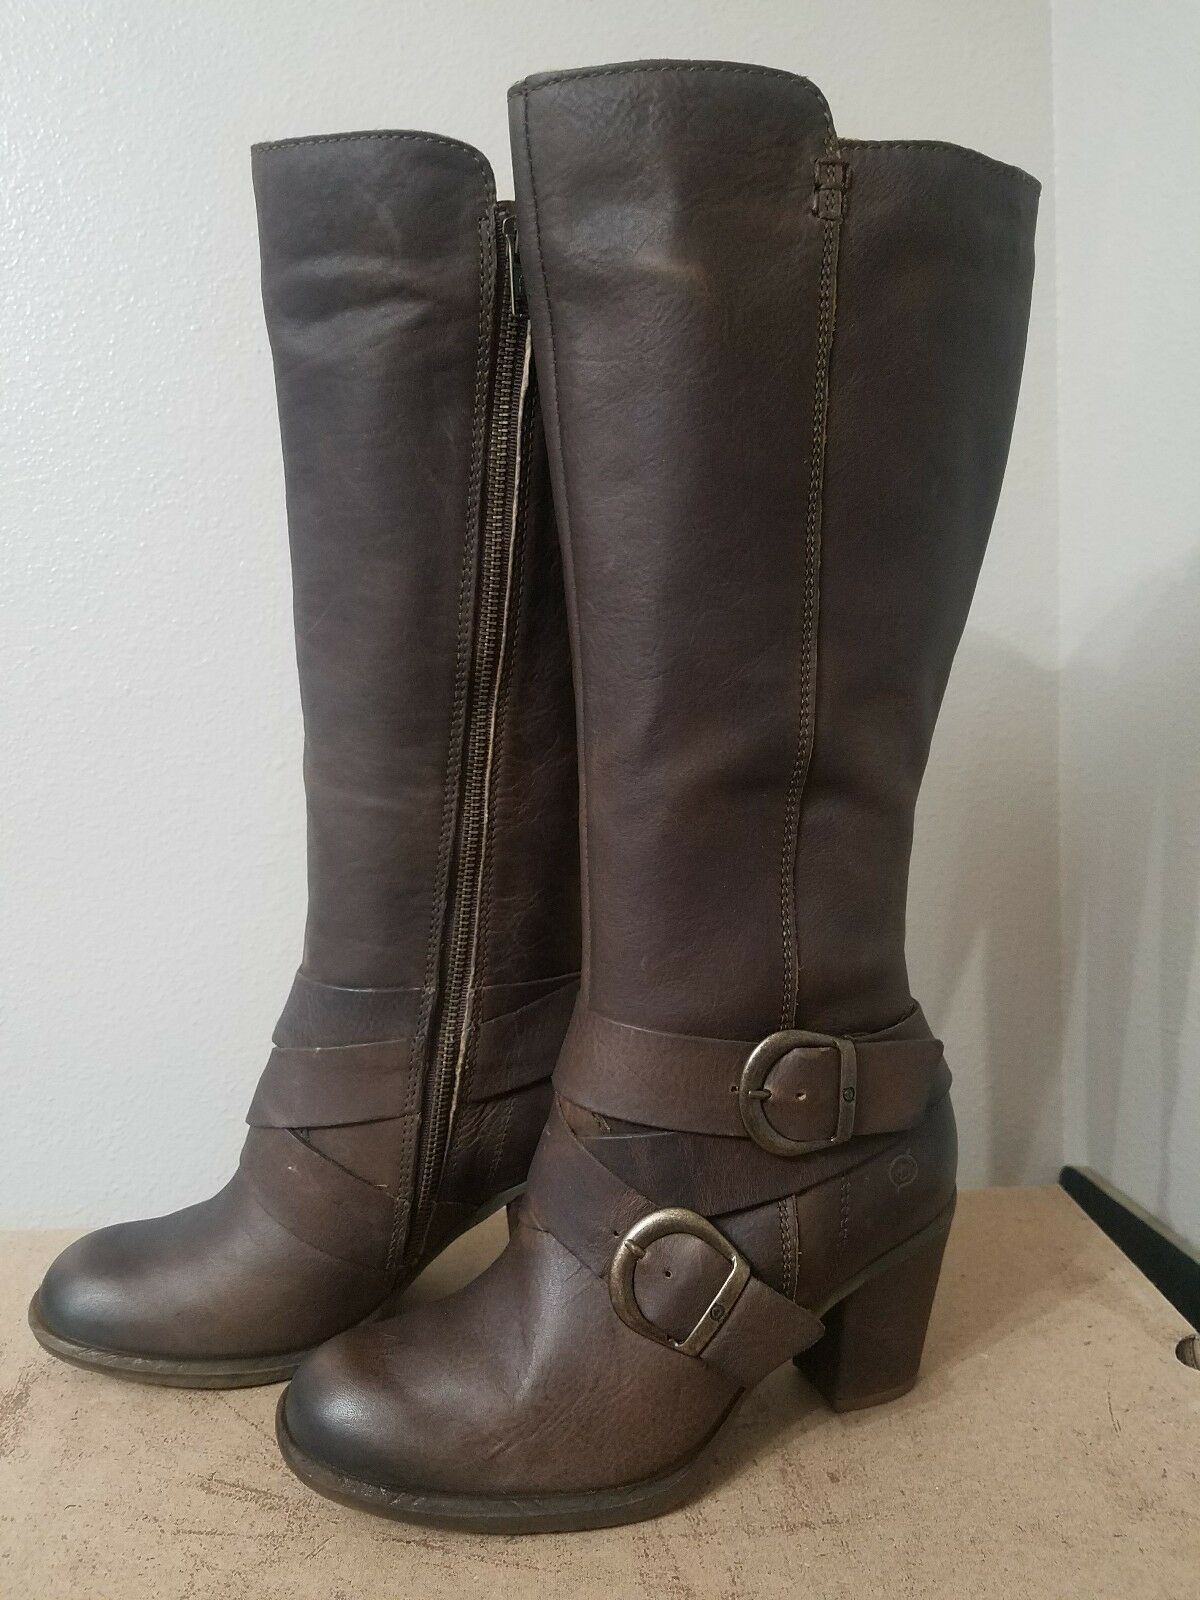 Born F32416 Cresent Knee Tan Braun Knee Cresent High Tall Stiefel Größe 11 9f1fdd